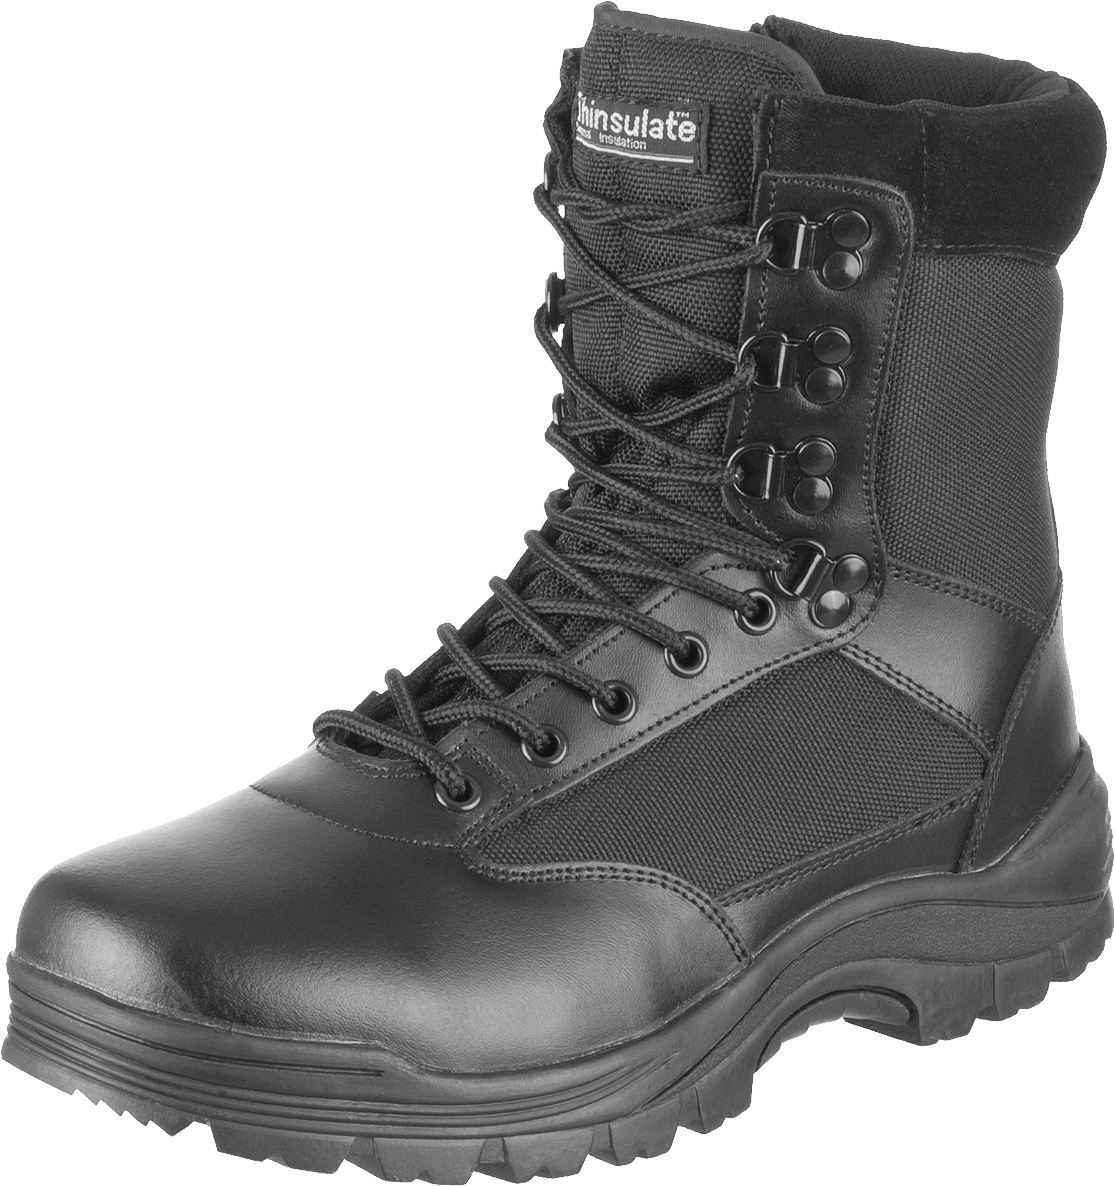 Boot Hd Png Transparent Boot Hd Png Images Pluspng